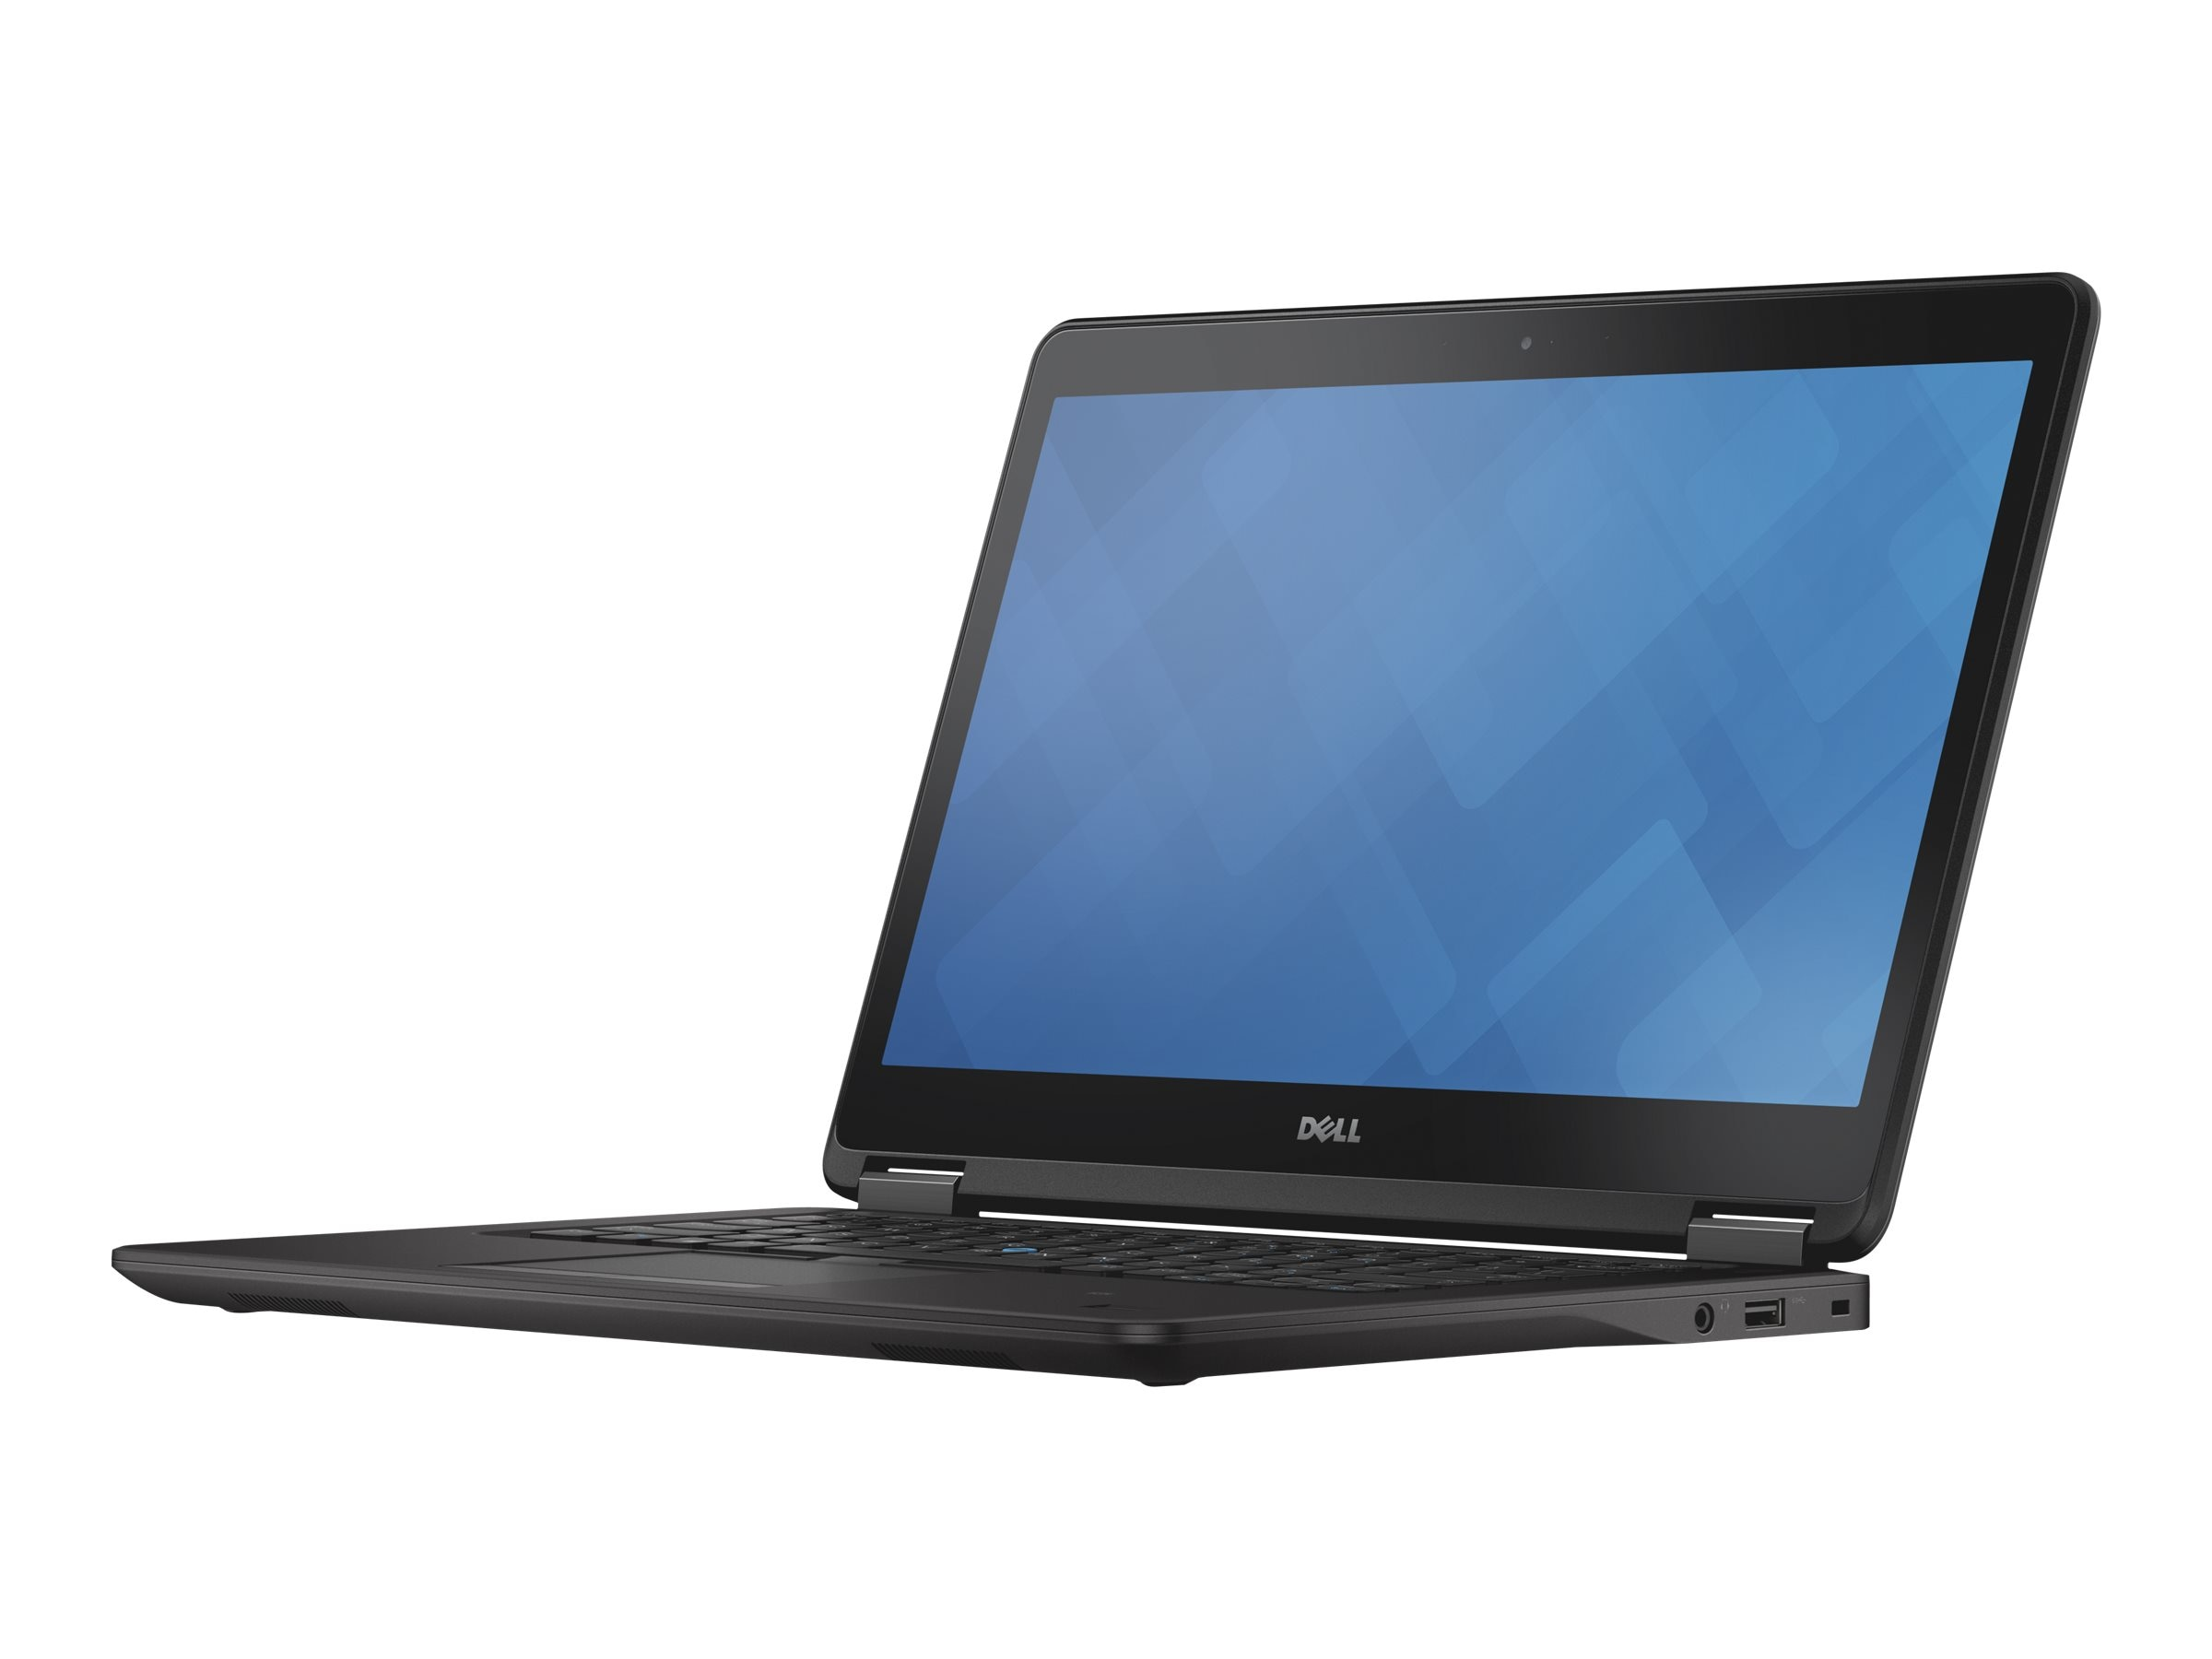 Dell Latitude Core i5-5200U 4GB 256GB 14